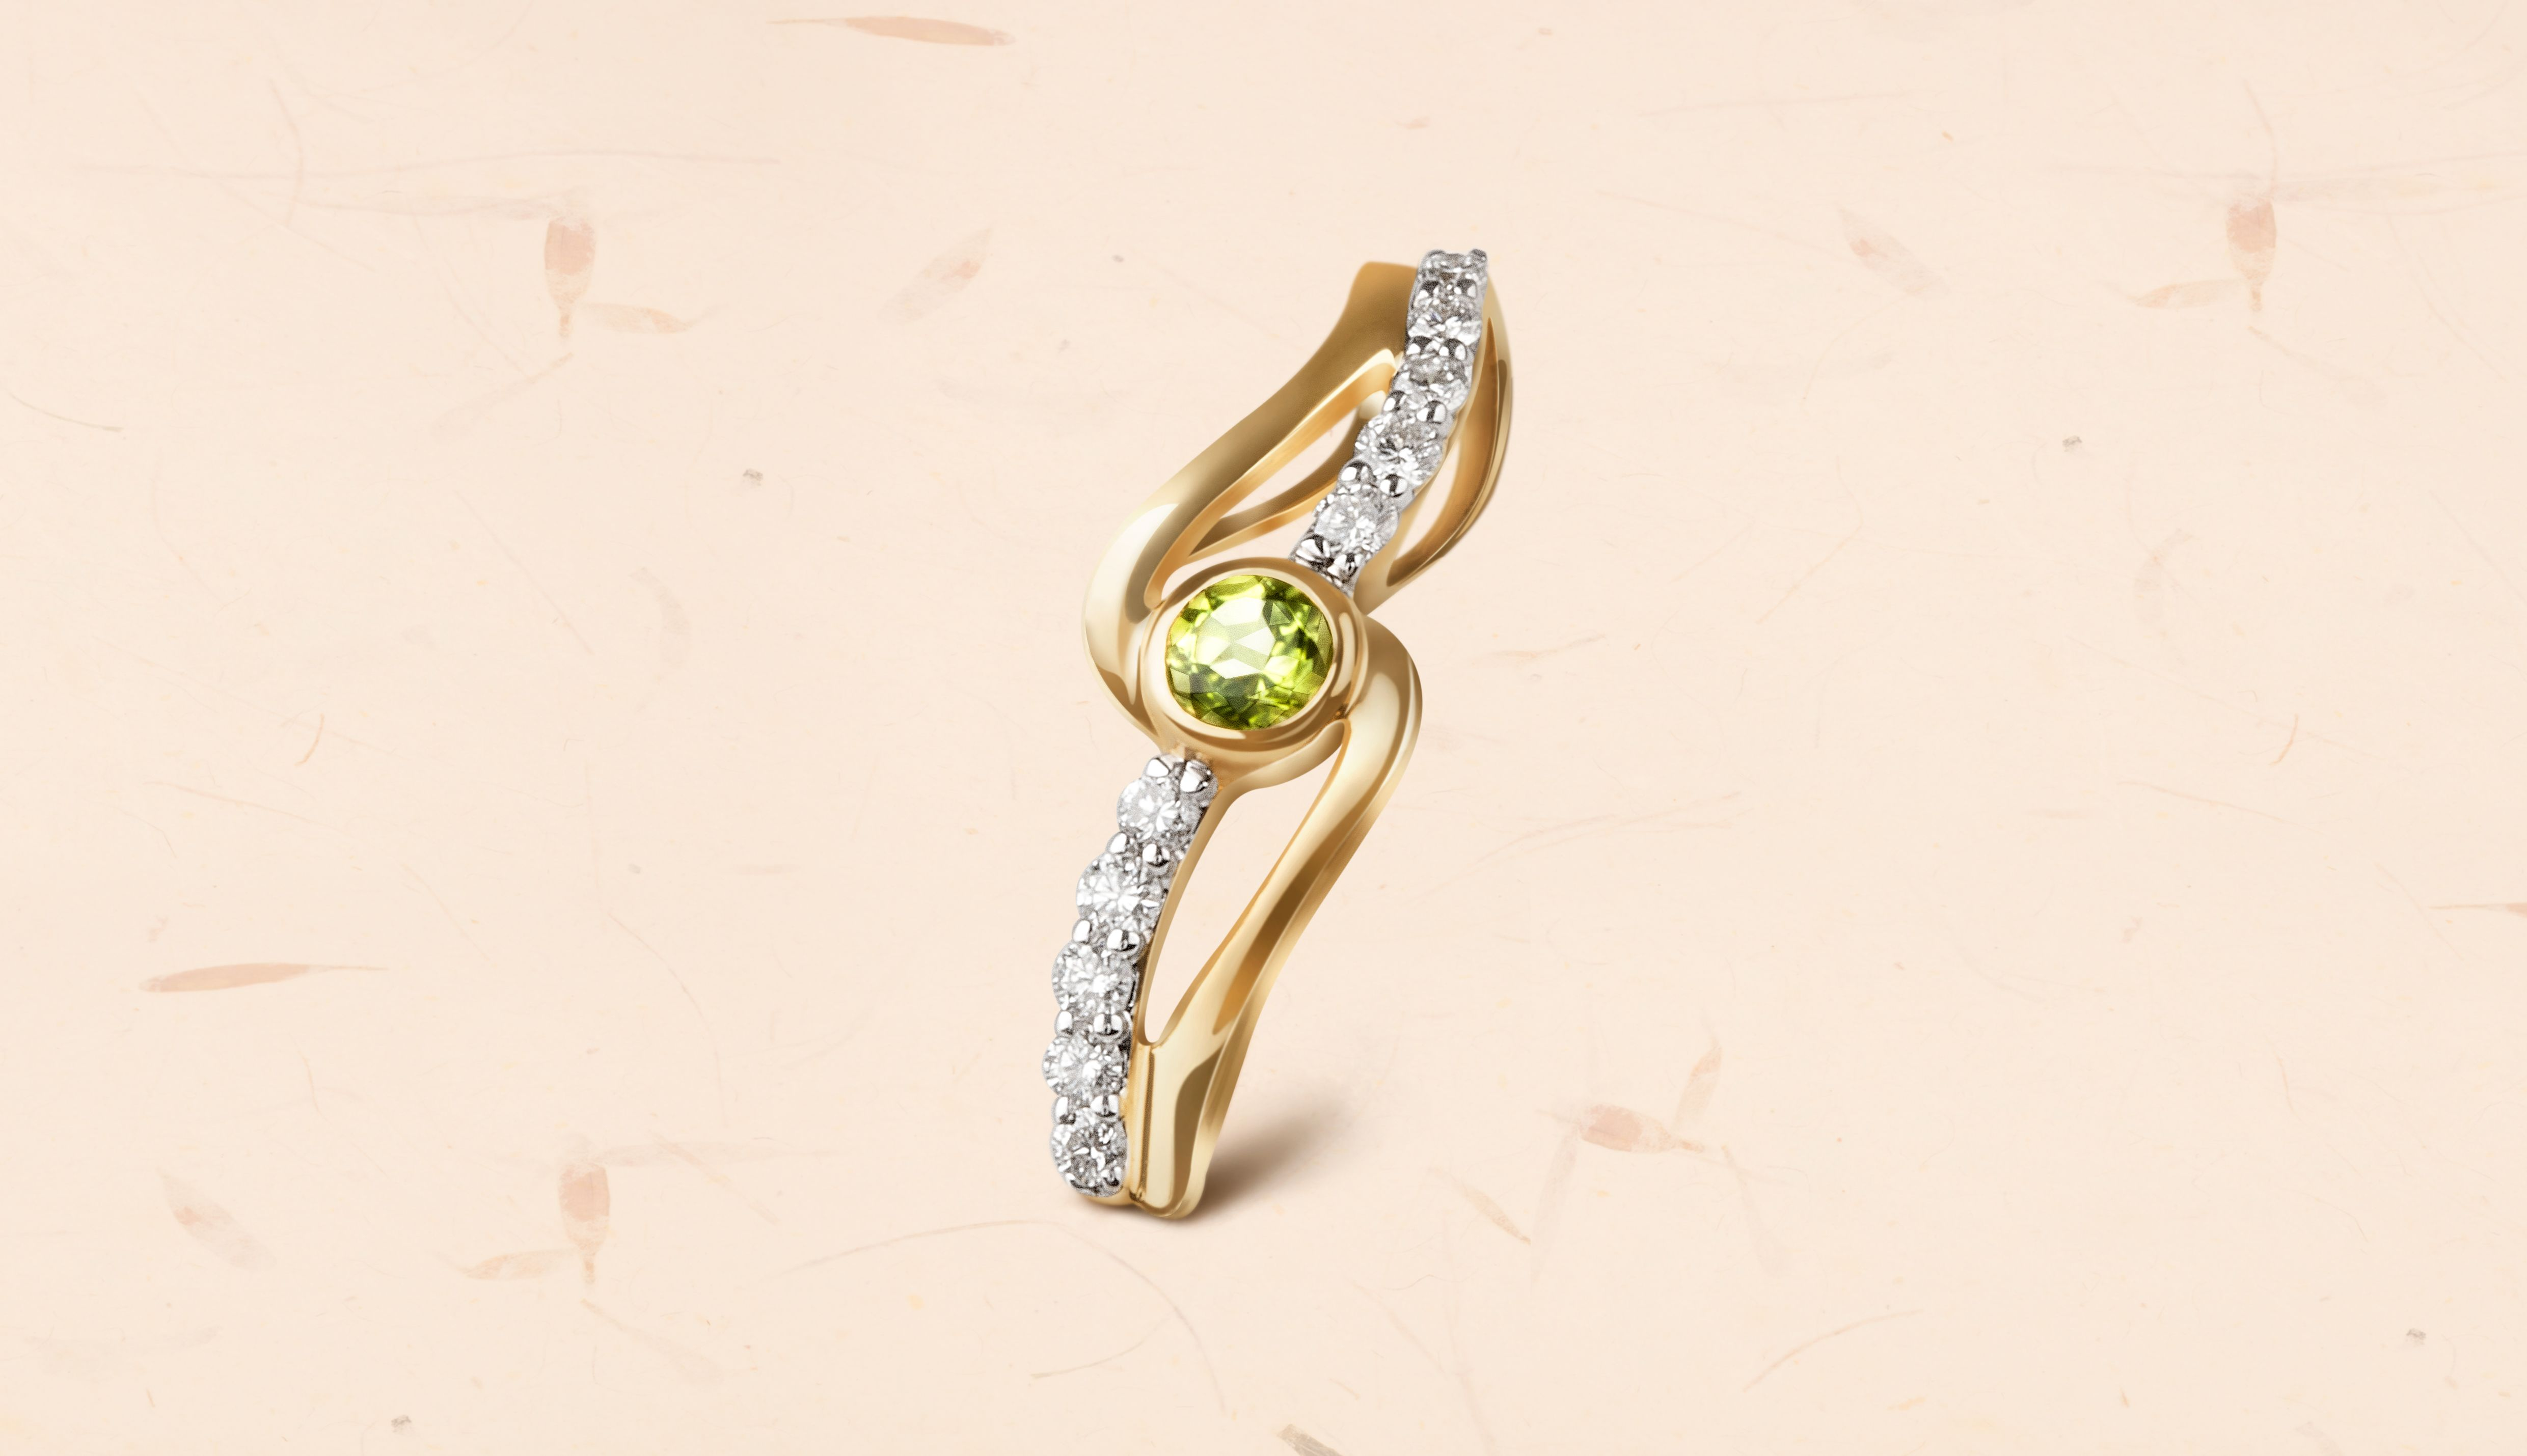 Peridot with its lime green hue adds a touch of subtle elegance to